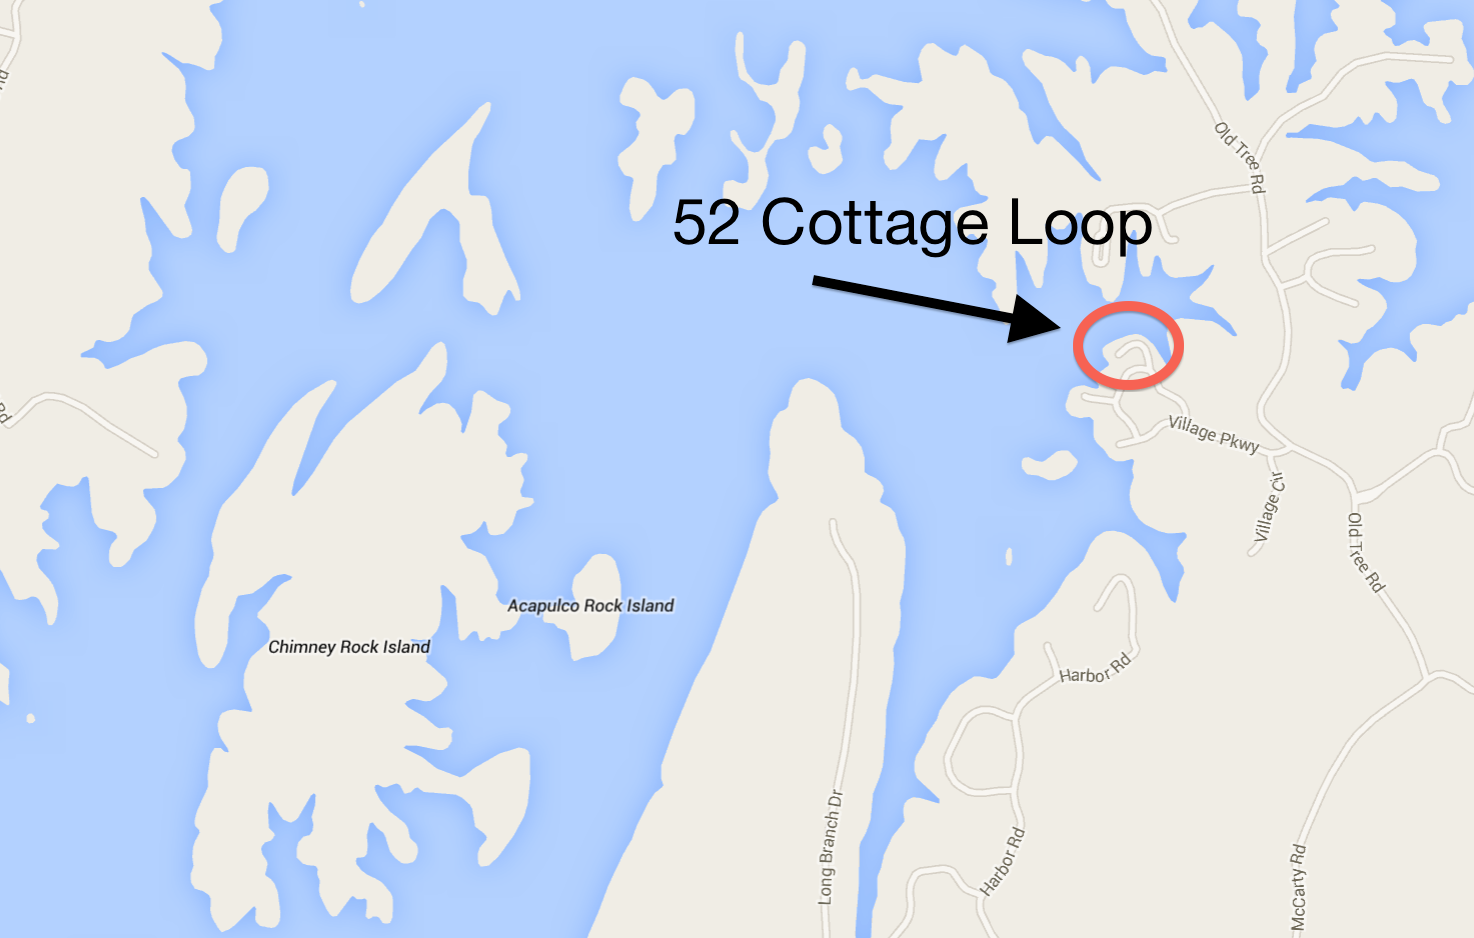 52 Cottage Loop on Lake Martin, AL